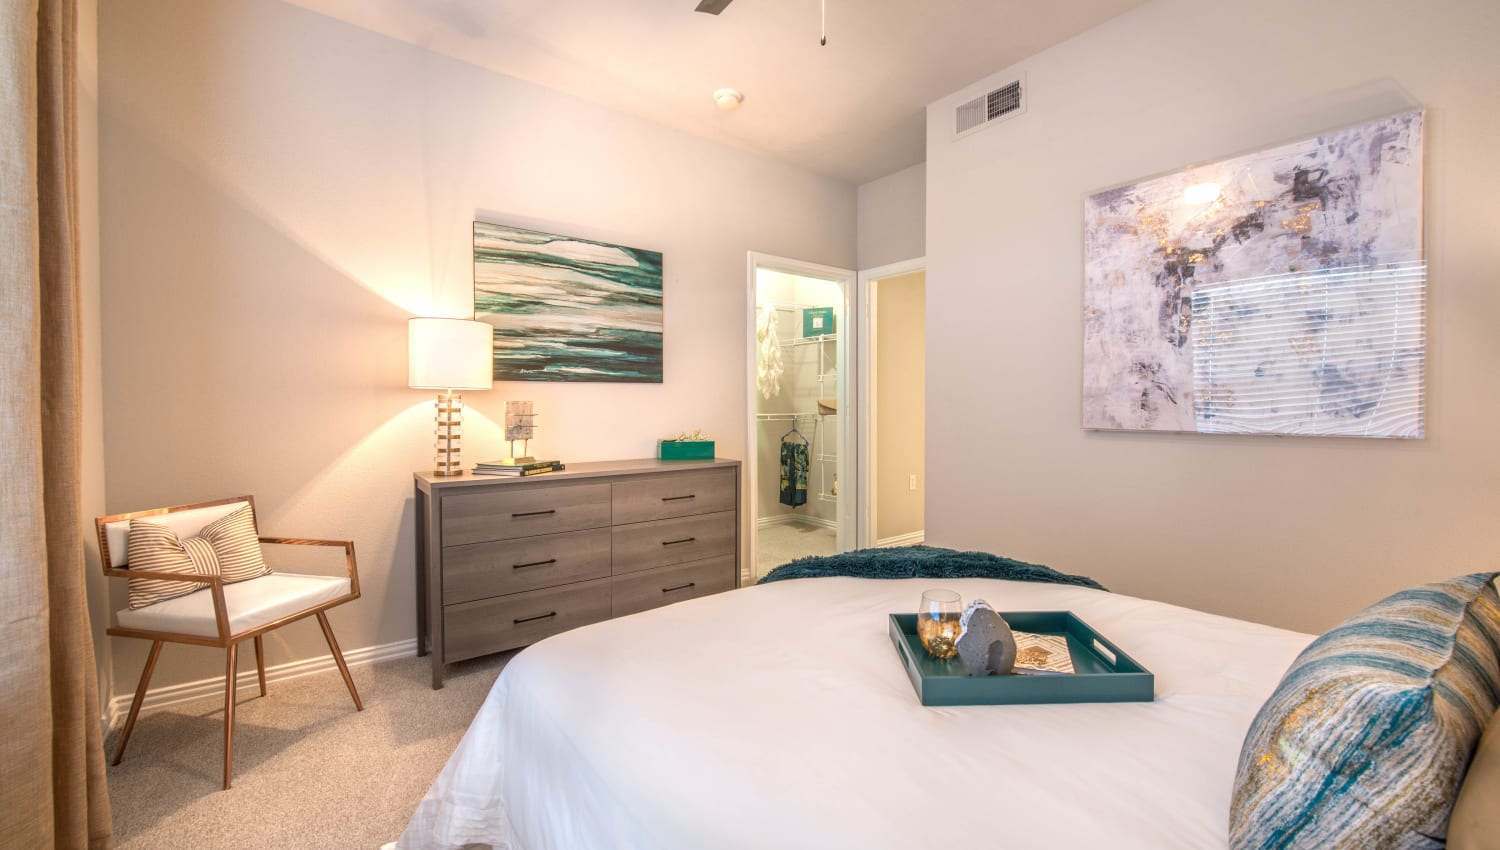 Warm and well-decorated bedroom in a model apartment at Olympus Stone Glen in Keller, Texas